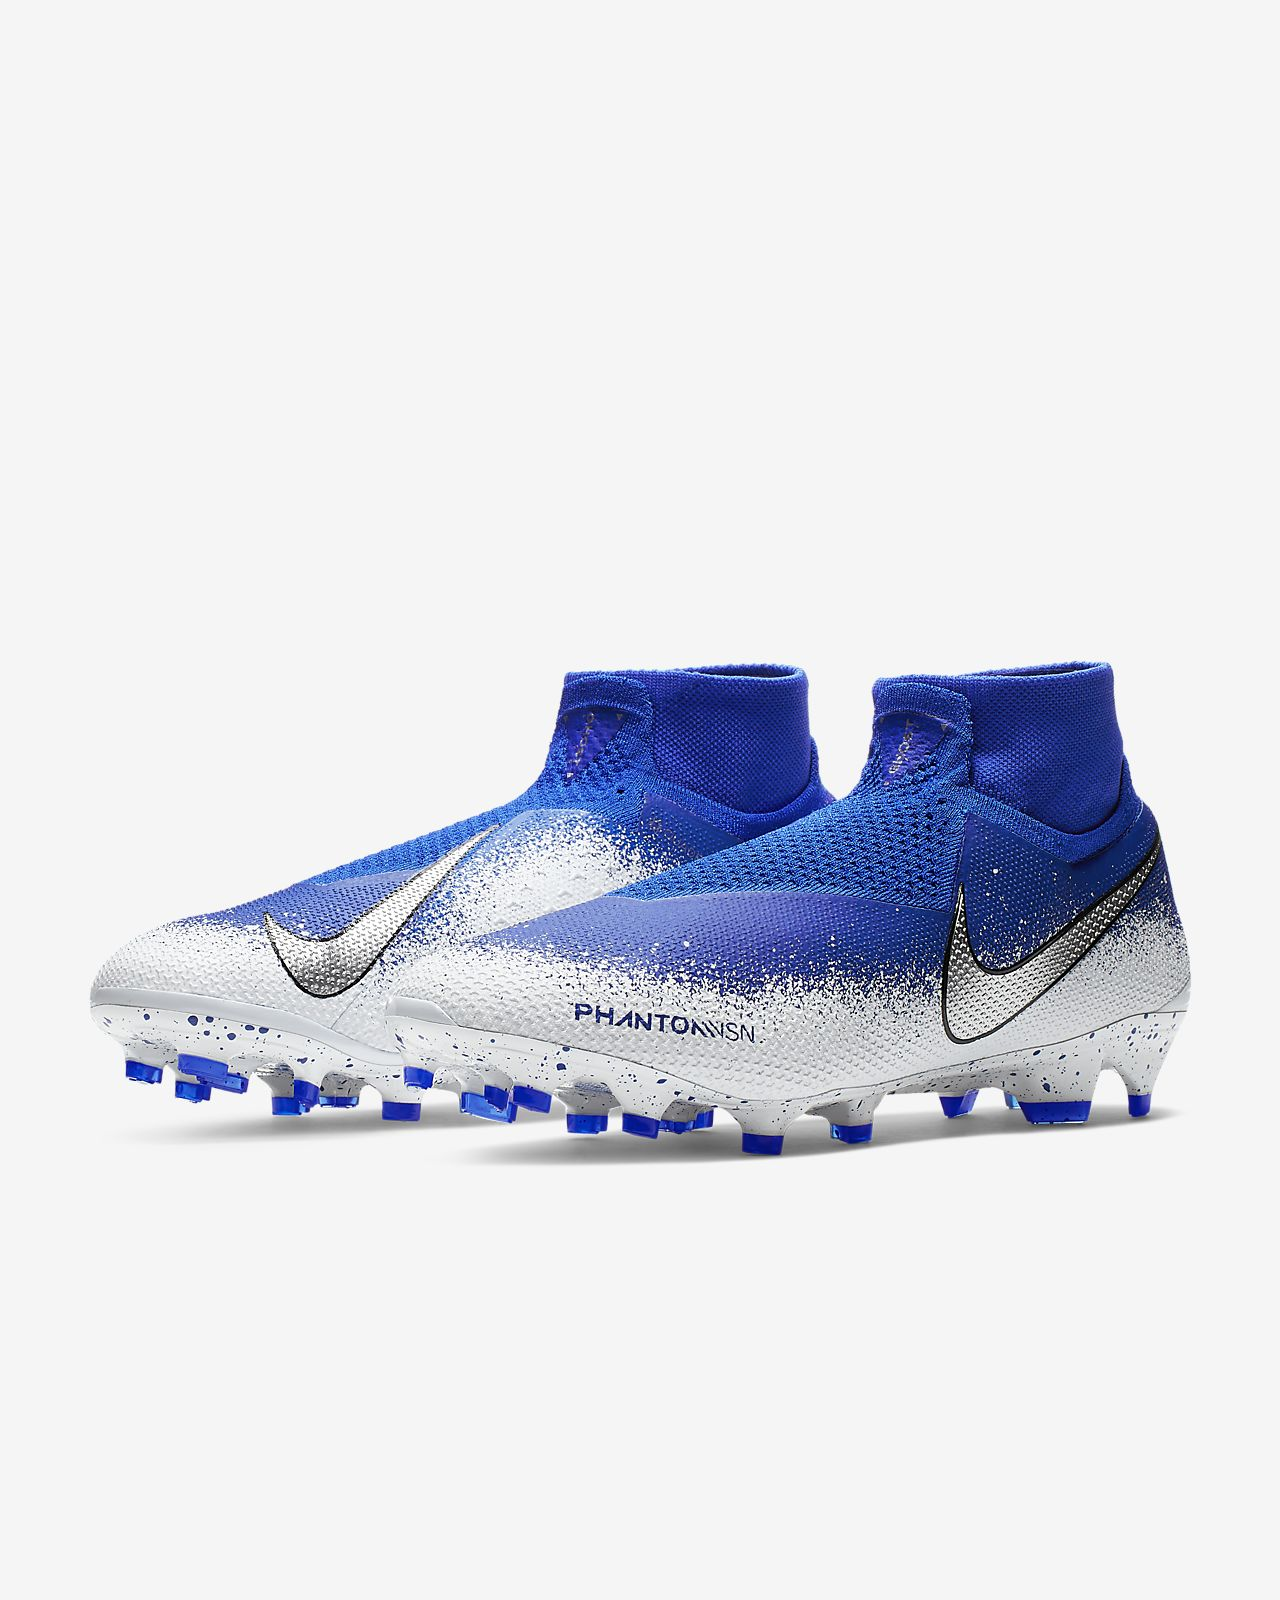 huge discount 211d4 1bca4 ... Nike Phantom Vision Elite Dynamic Fit FG Firm-Ground Football Boot